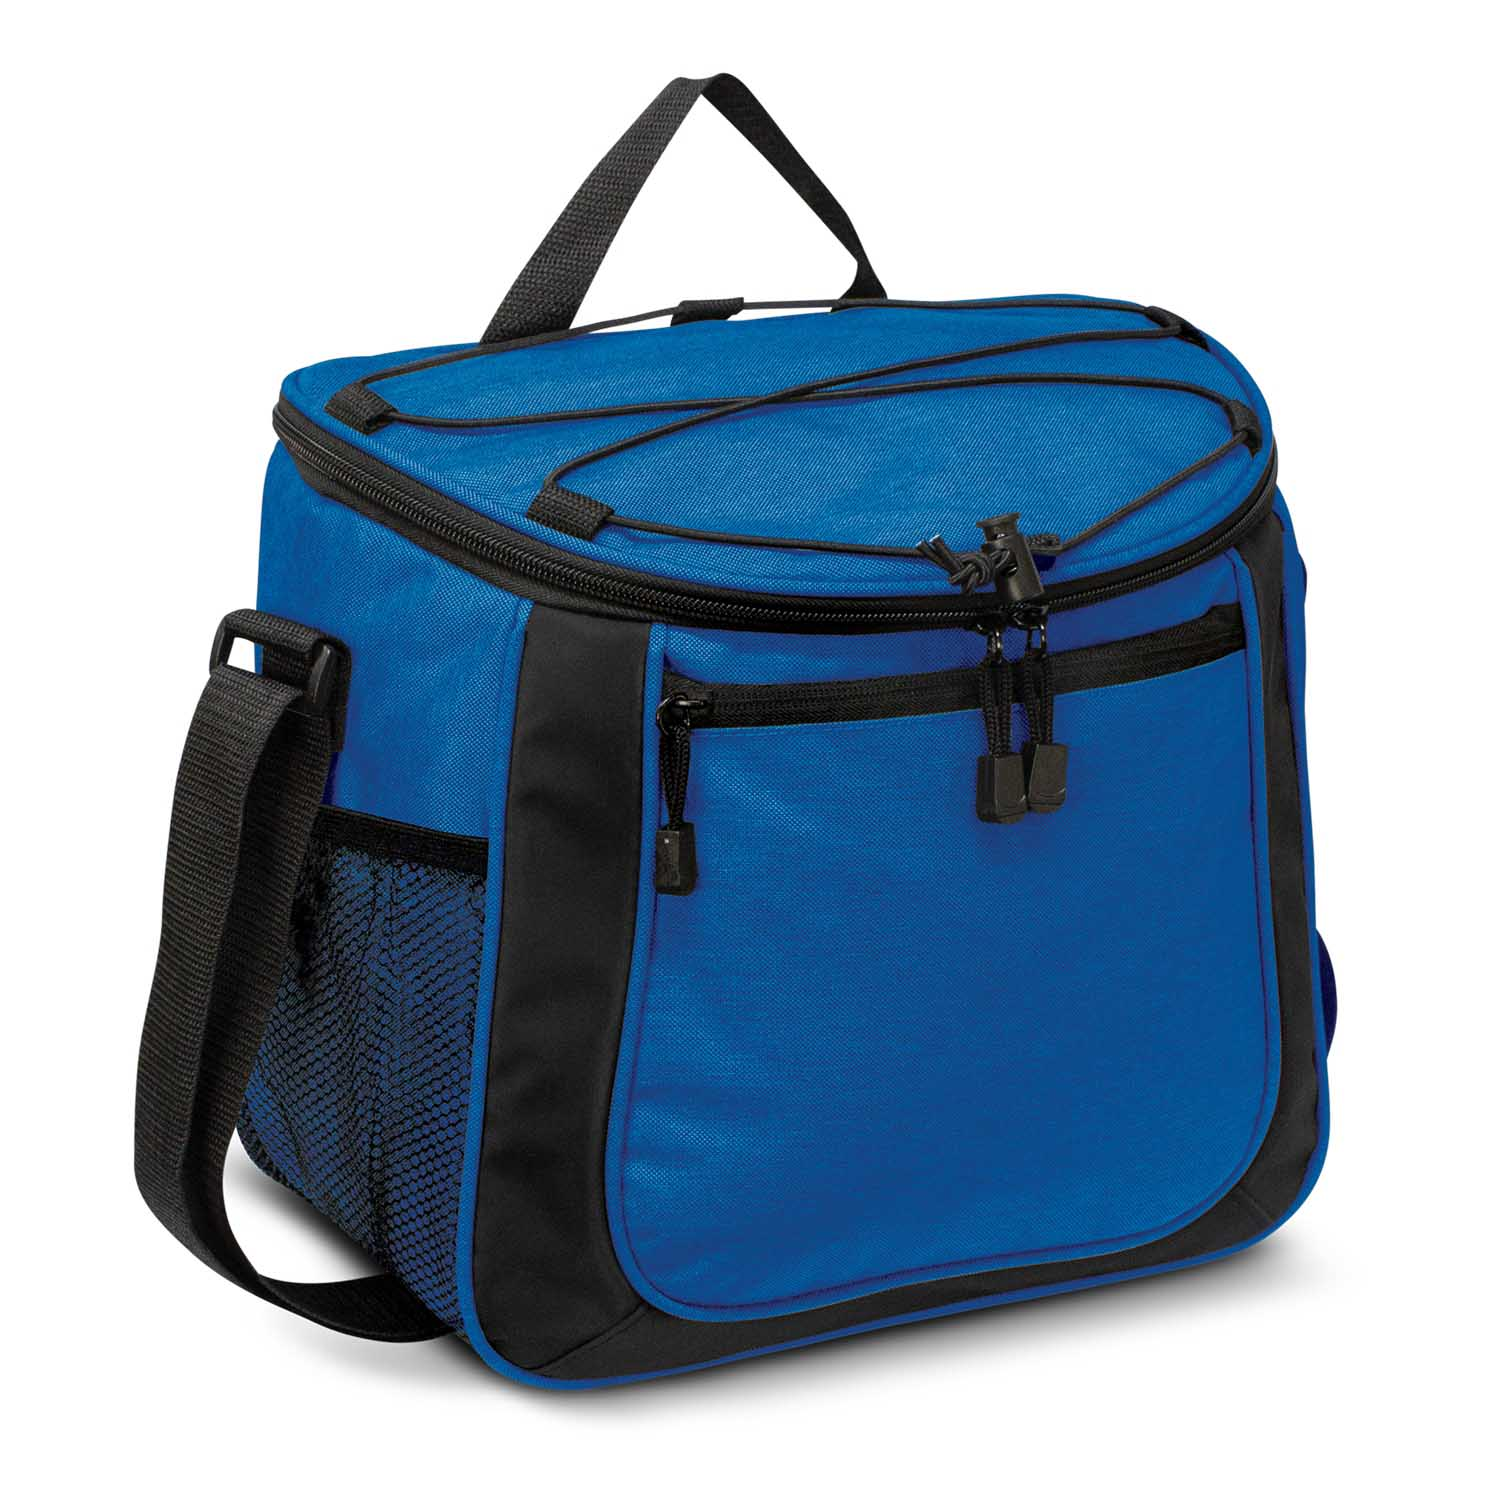 Custom Drak Blue Aspiring Cooler Bags in Perth